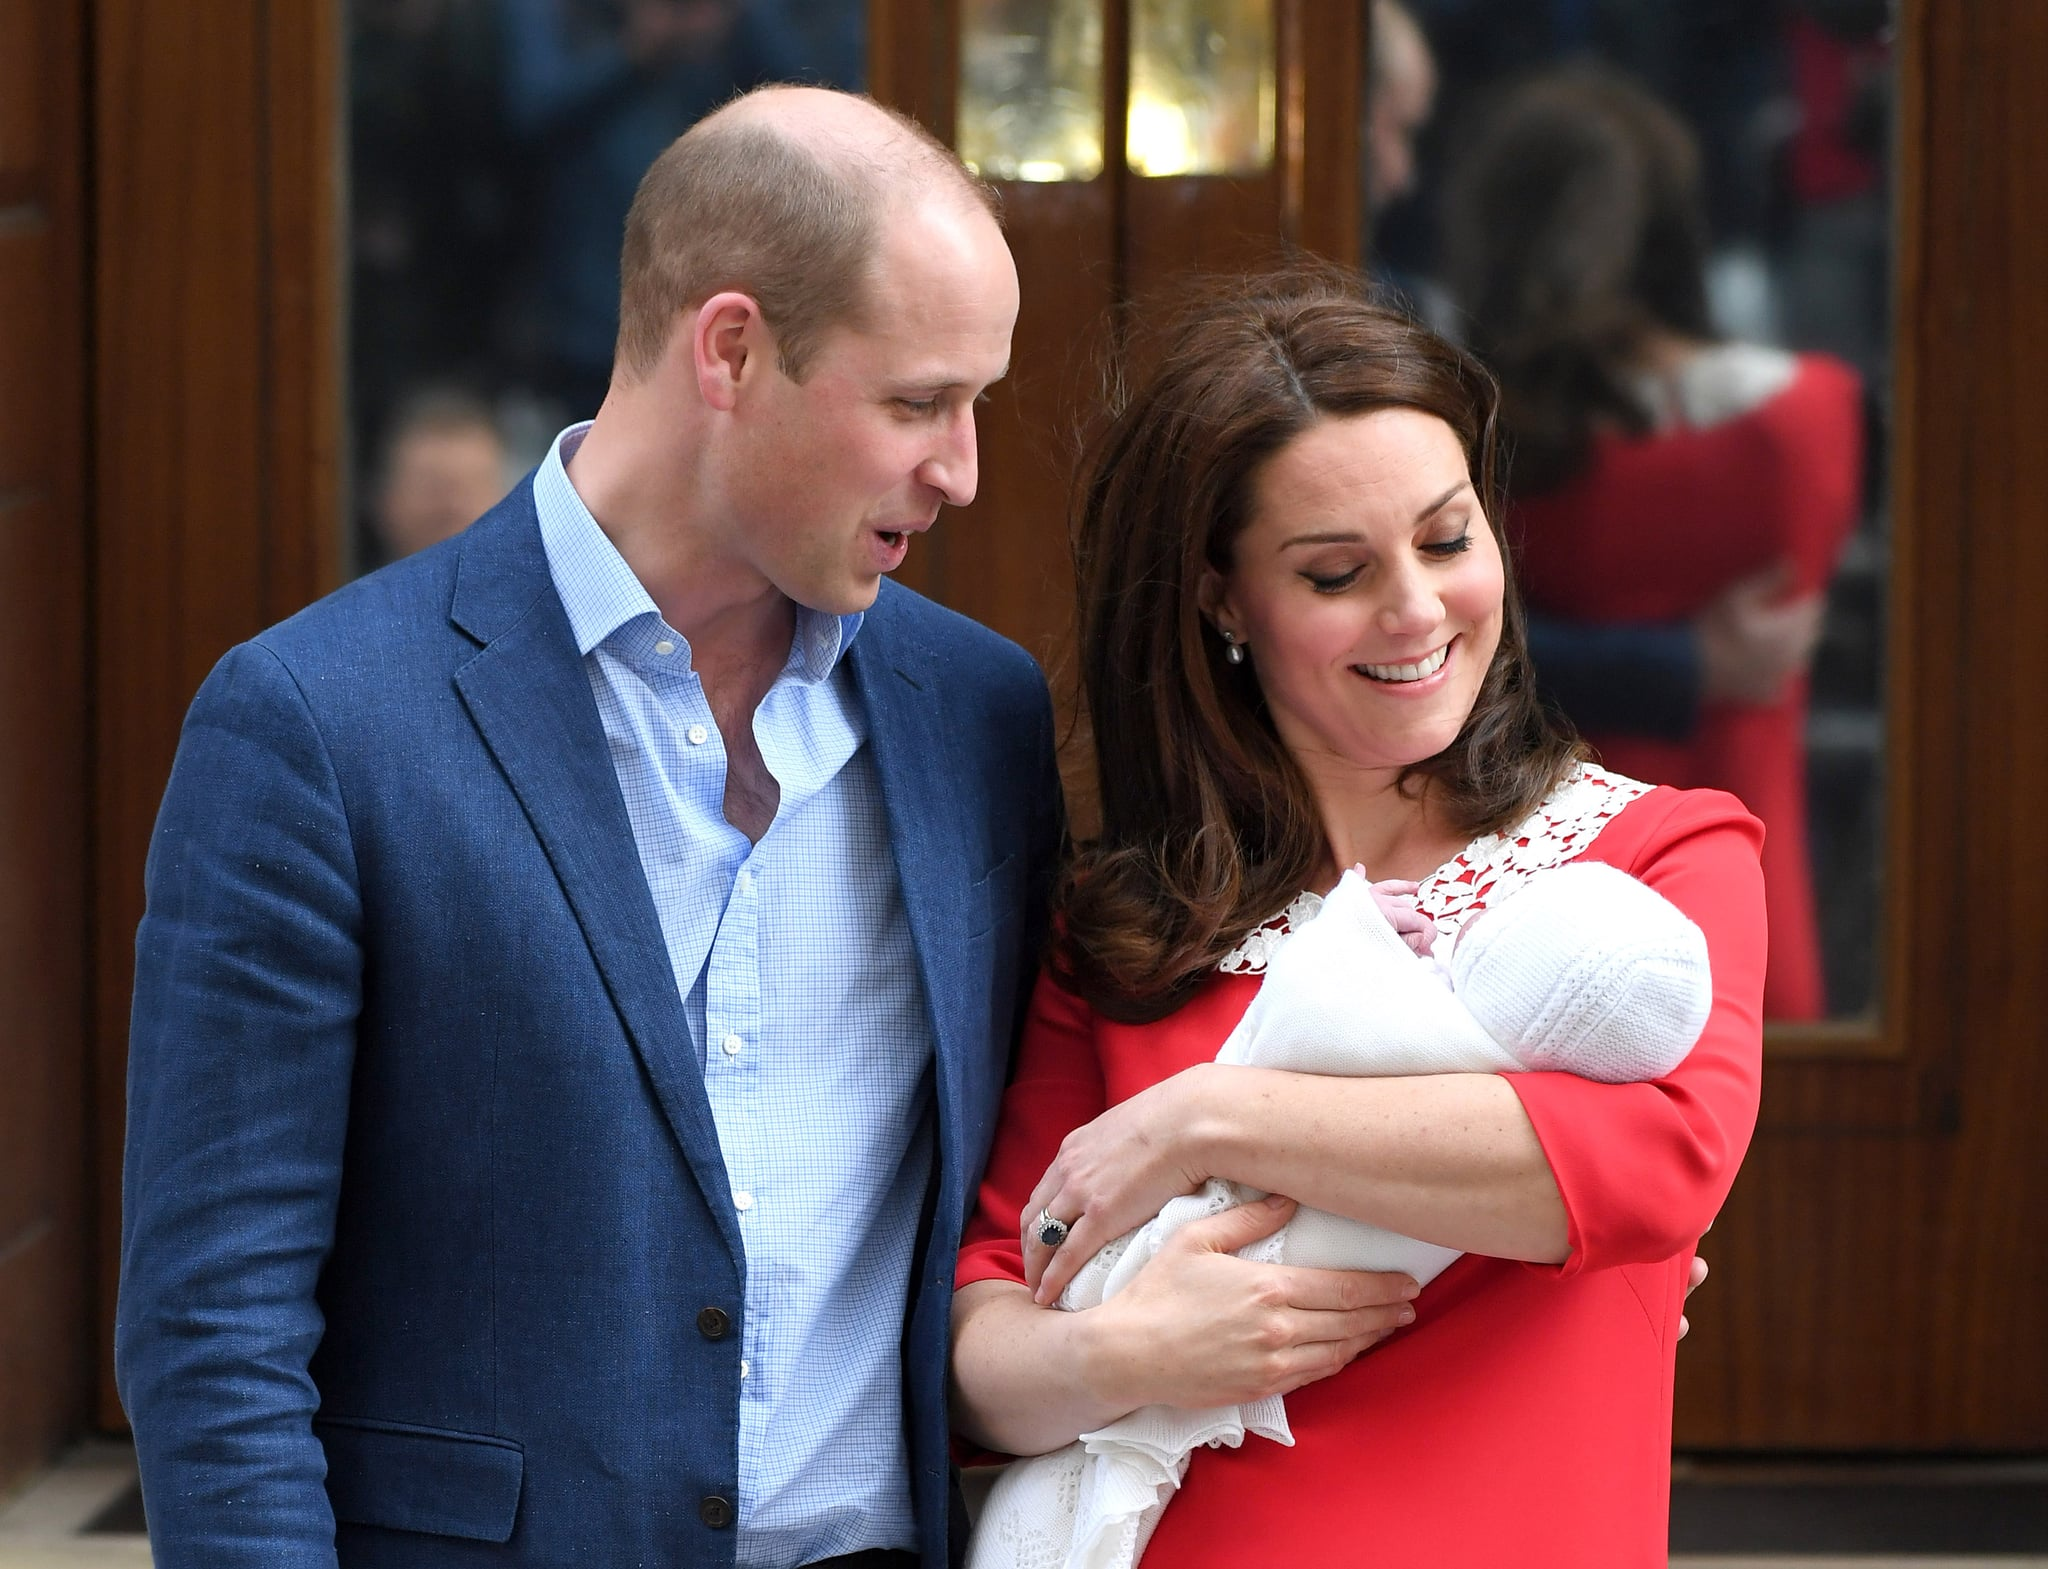 LONDON, ENGLAND - APRIL 23:  Catherine, Duchess of Cambridge and Prince William, Duke of Cambridge depart the Lindo Wing with their newborn son Prince Louis of Cambridge at St Mary's Hospital on April 23, 2018 in London, England. The Duchess safely delivered a boy at 11:01 am, weighing 8lbs 7oz, who will be fifth in line to the throne.  (Photo by Karwai Tang/WireImage)